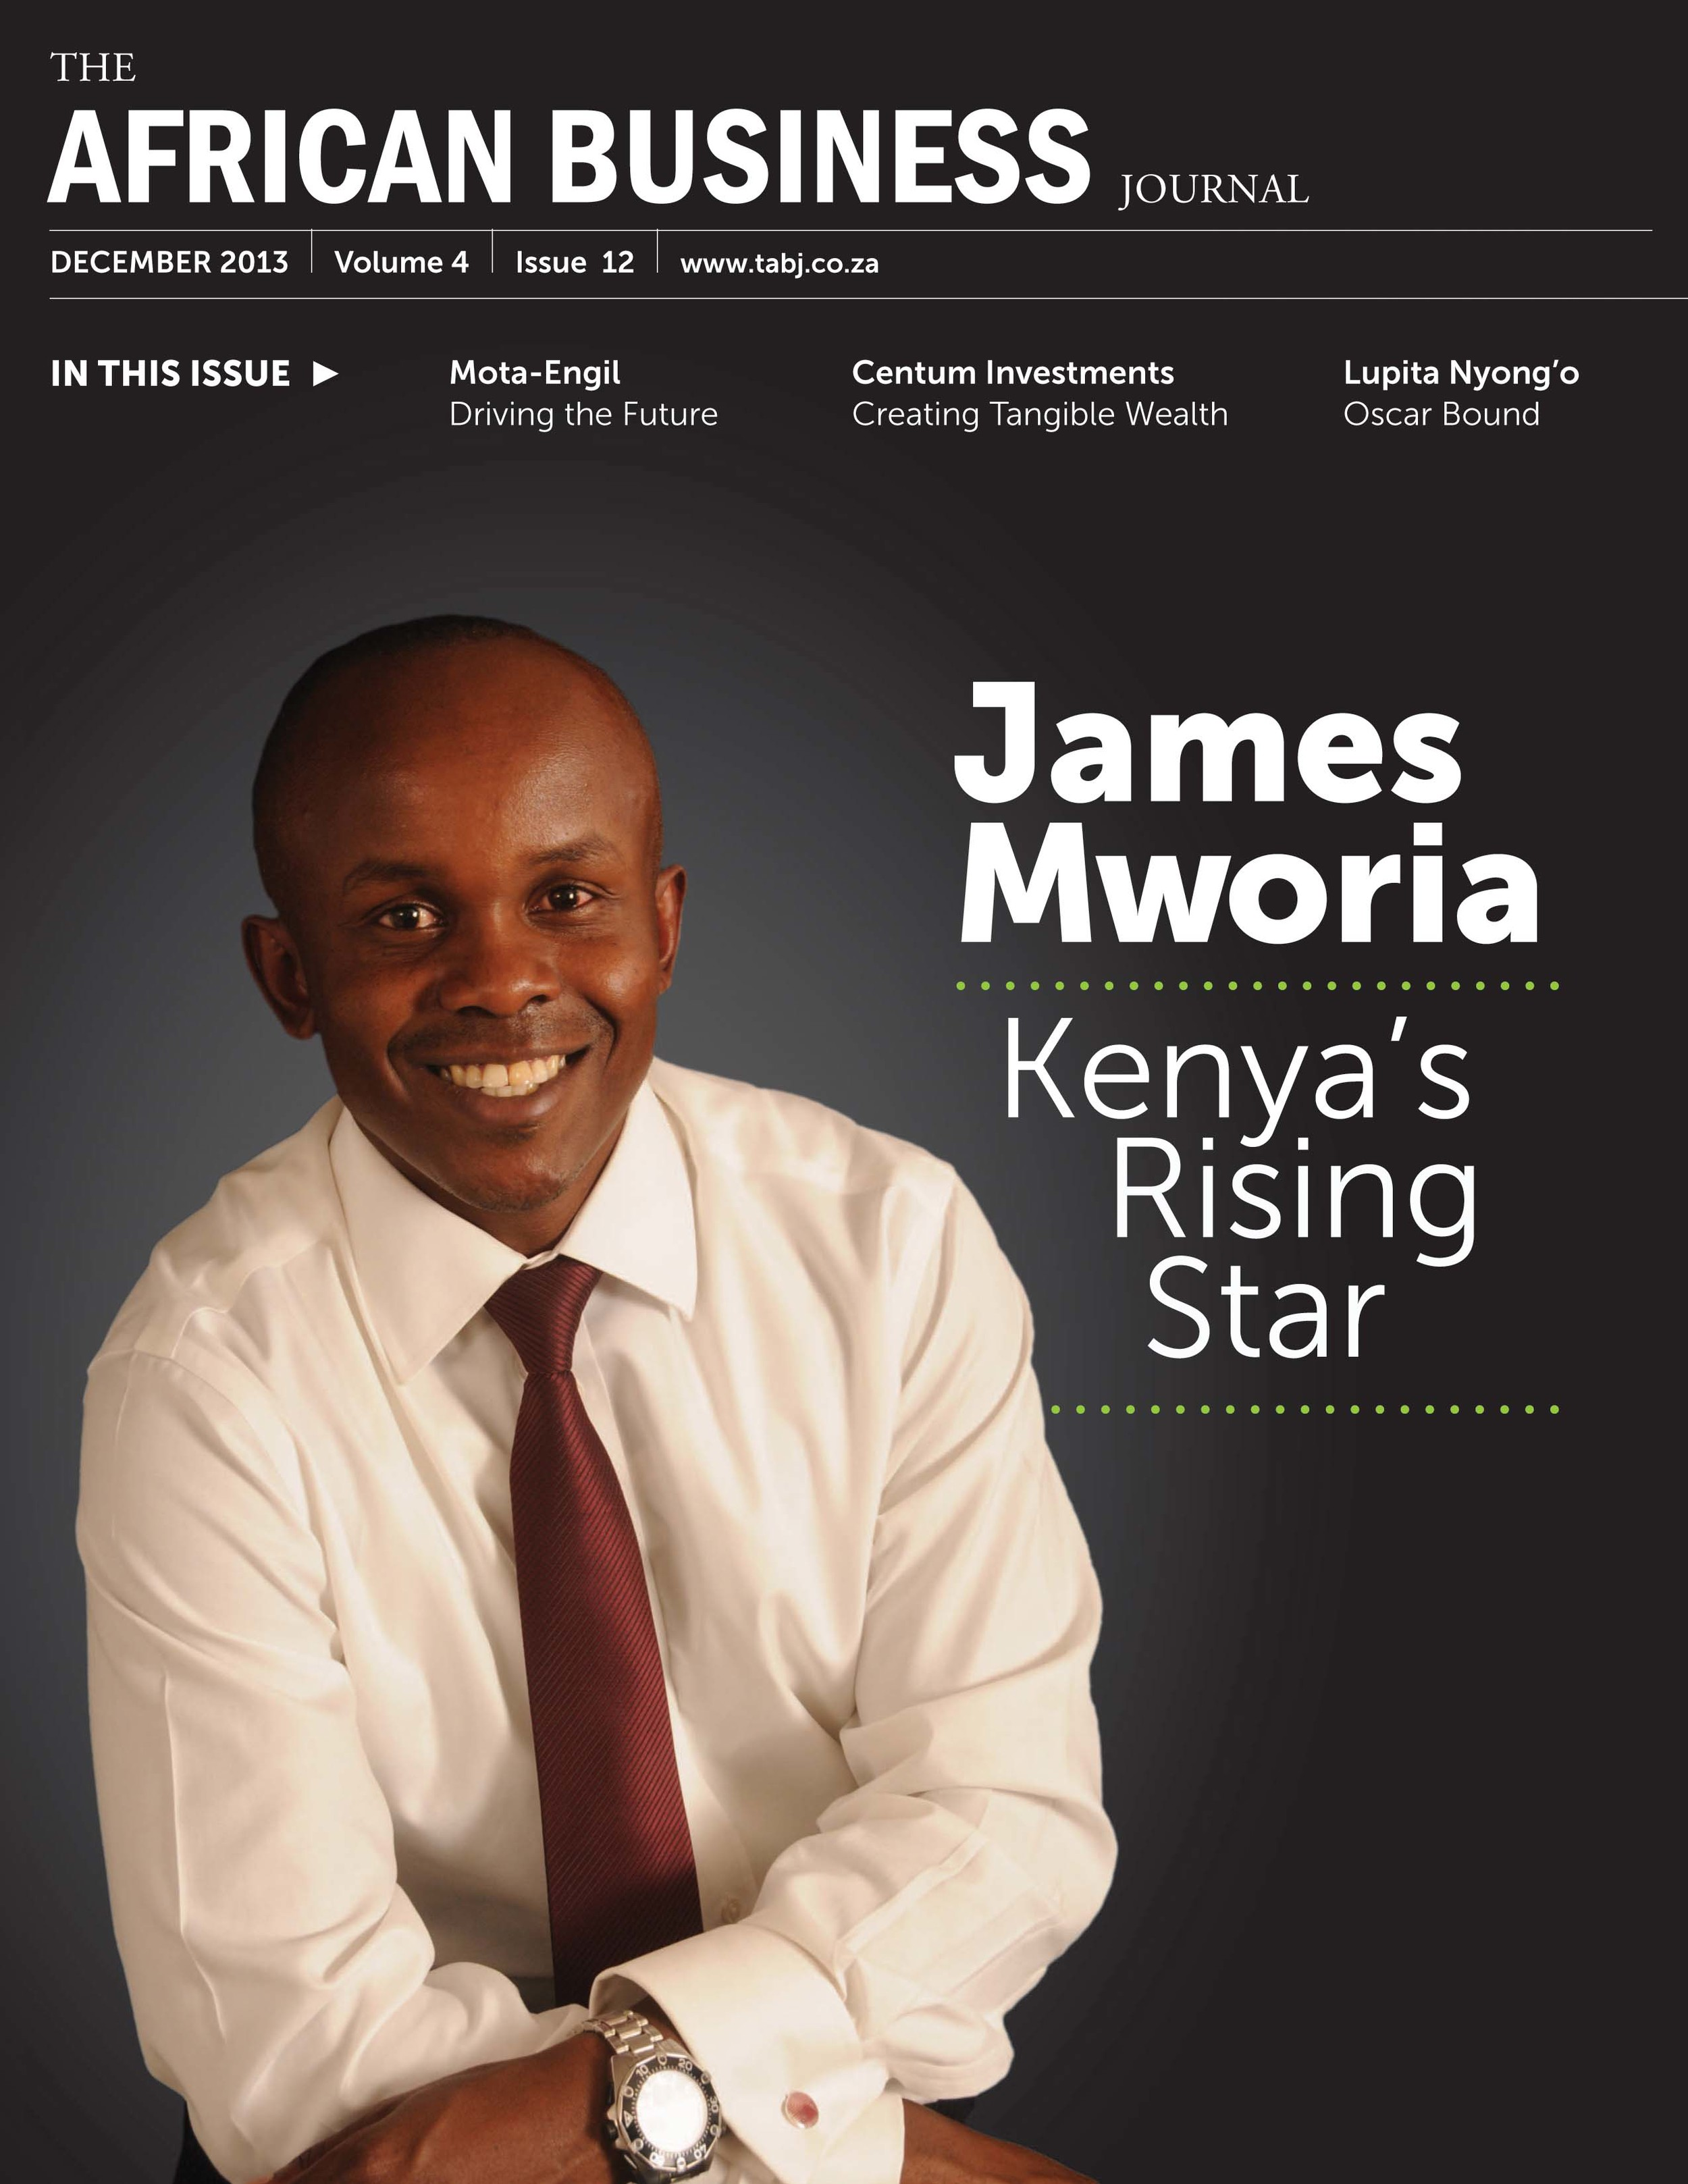 James Mworia, CEO of Centum, the largest listed investment company in East Africa